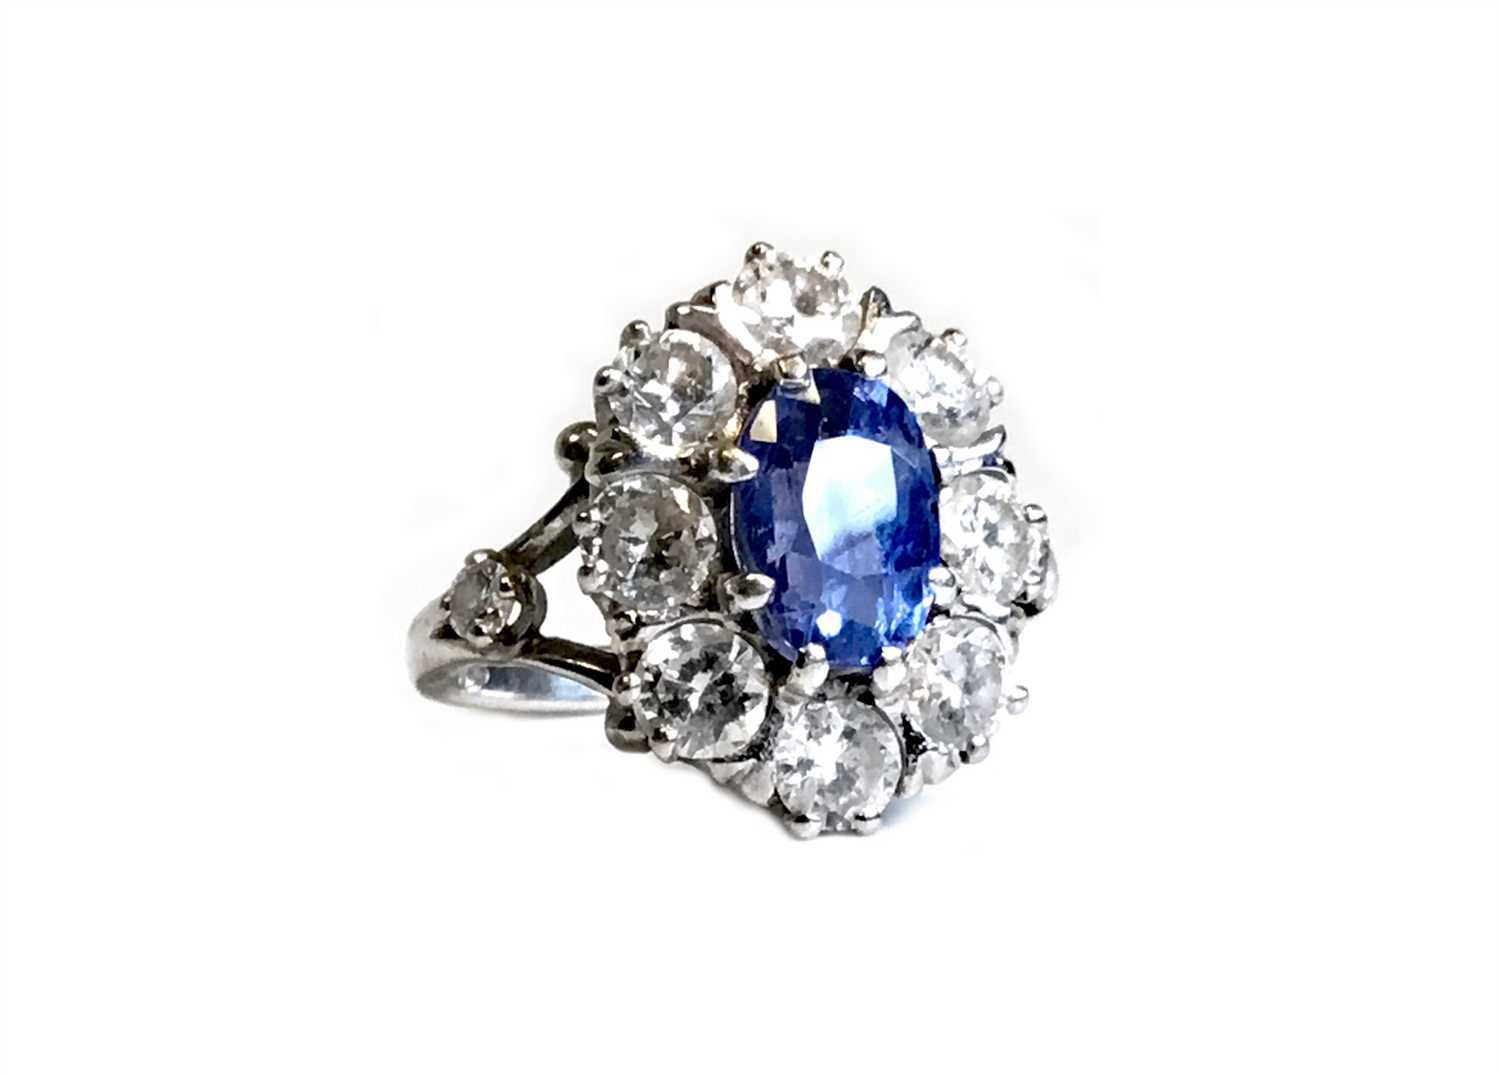 Lot 2-AN IMPRESSIVE CERTIFICATED NATURAL SAPPHIRE AND DIAMOND CLUSTER RING